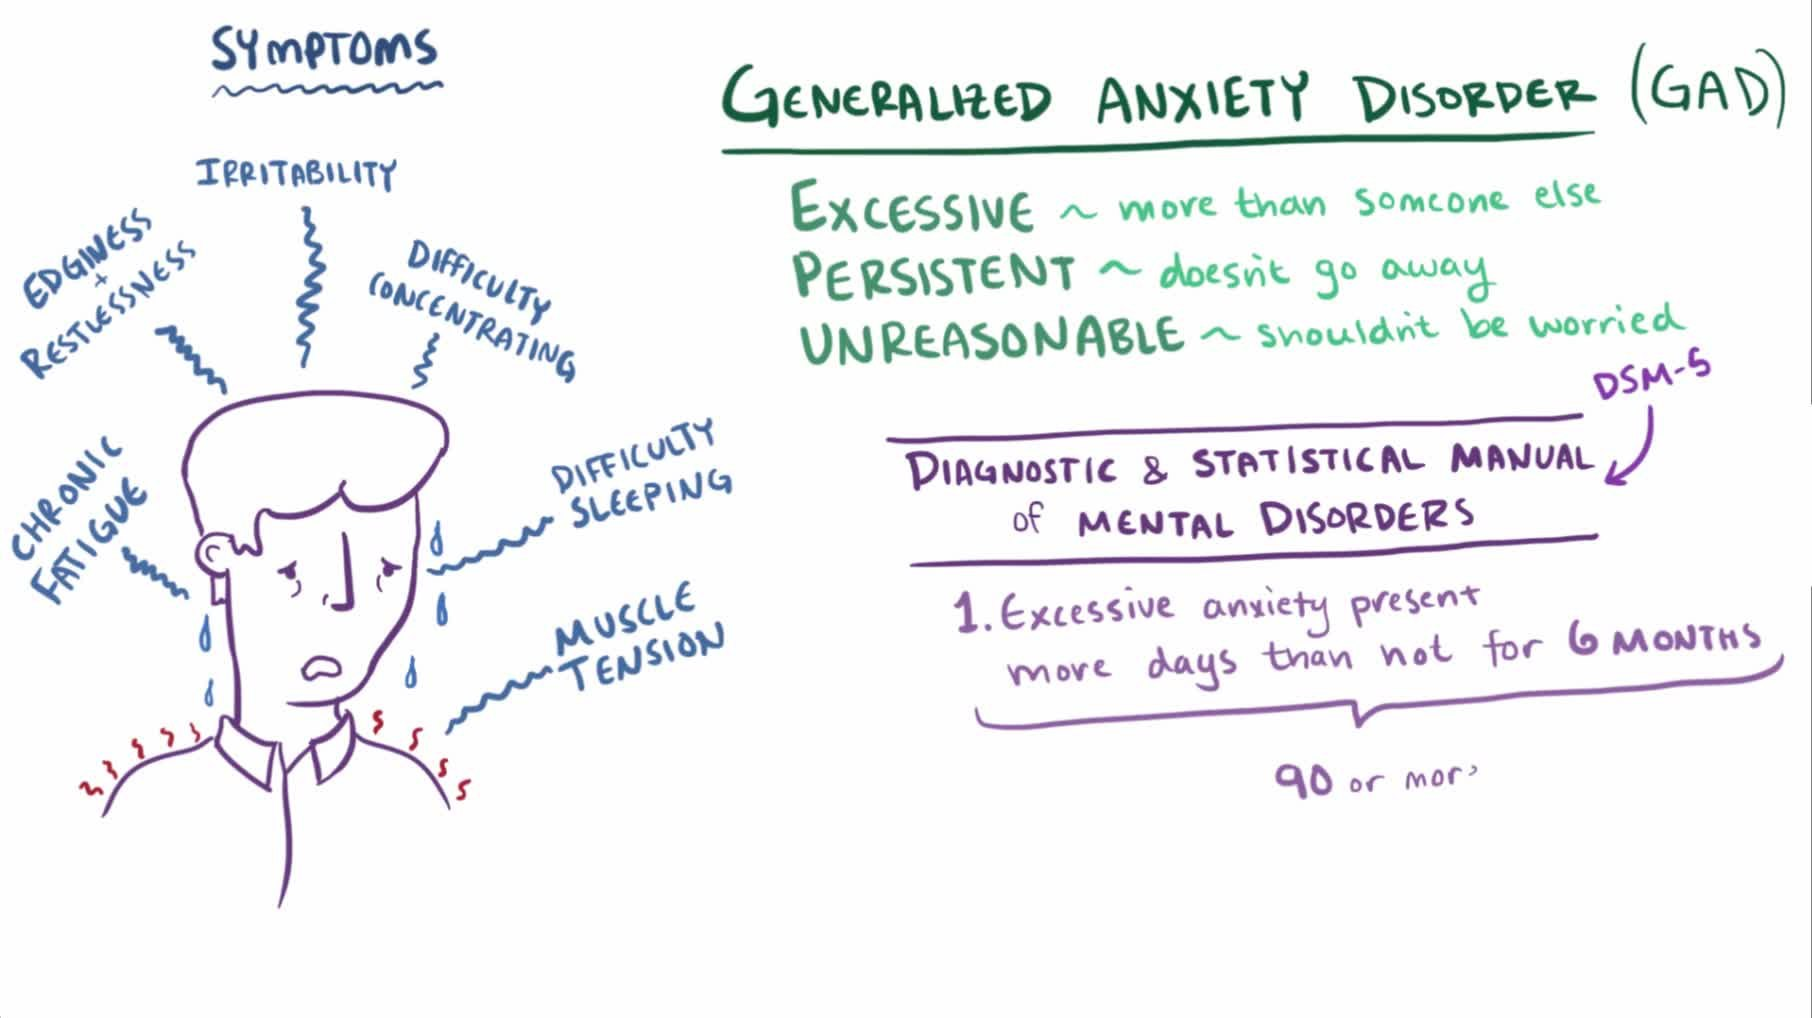 Prevalence Language Disorders Generalized Anxiety Disorder Wikipedia